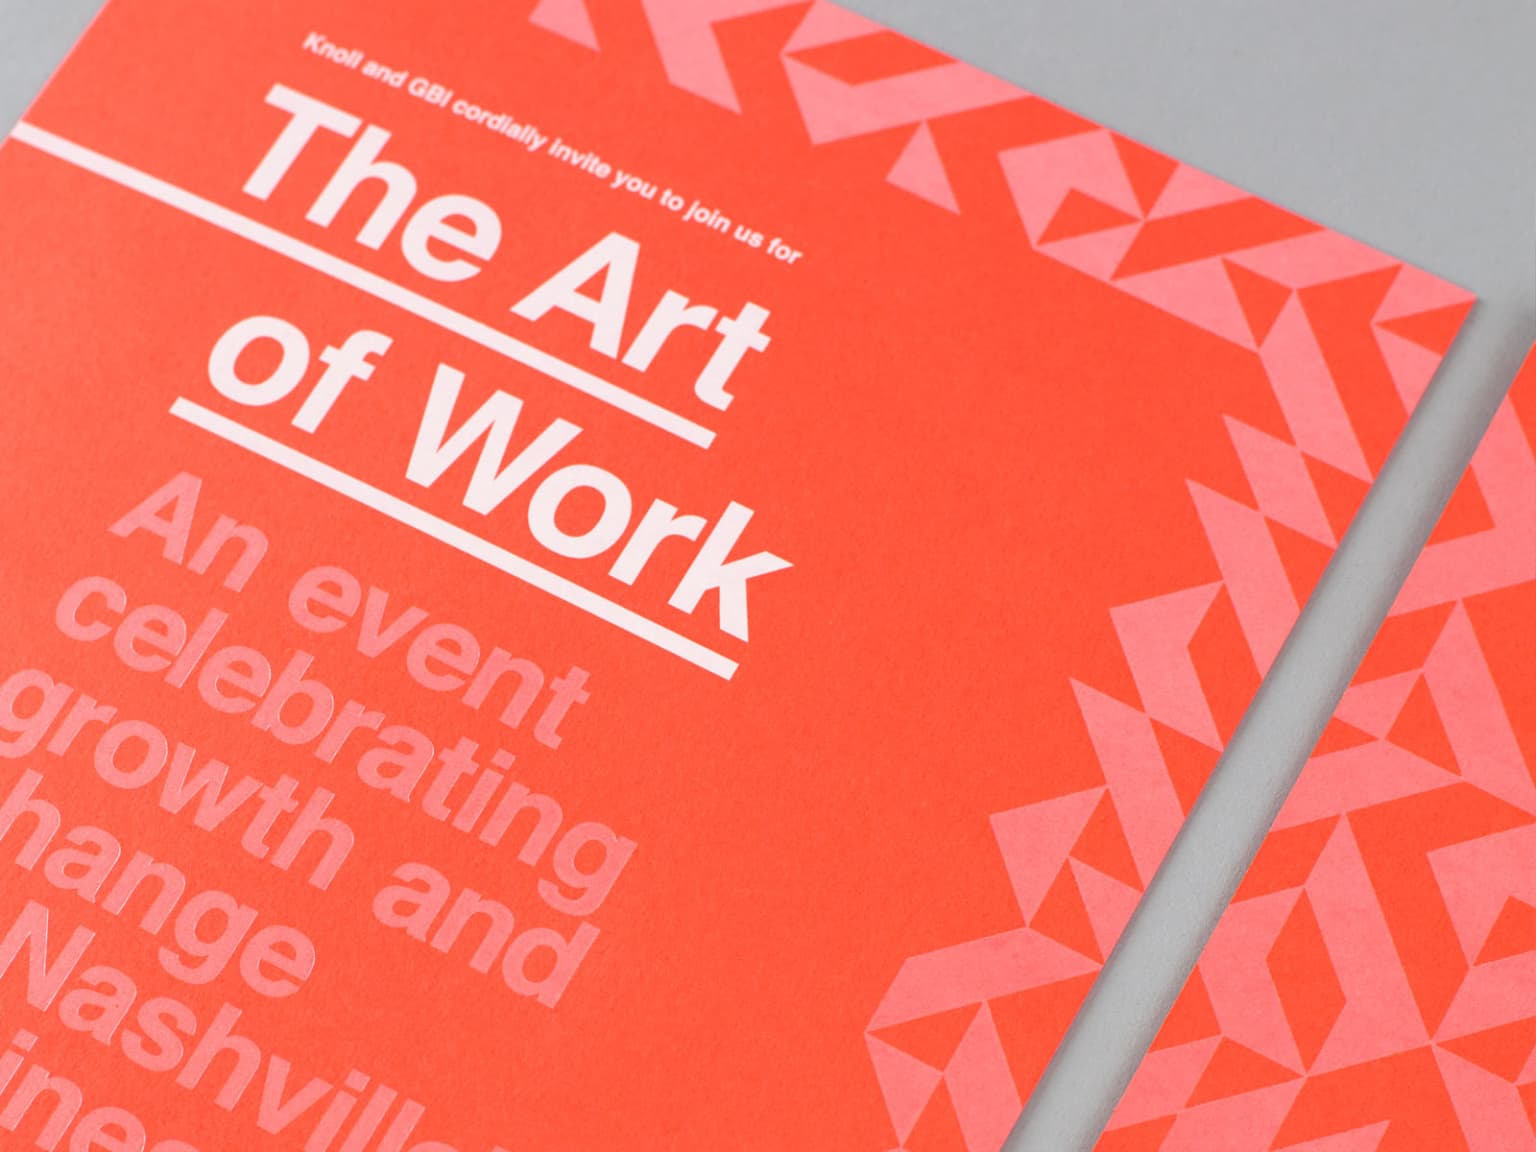 Knoll - The Art of Work